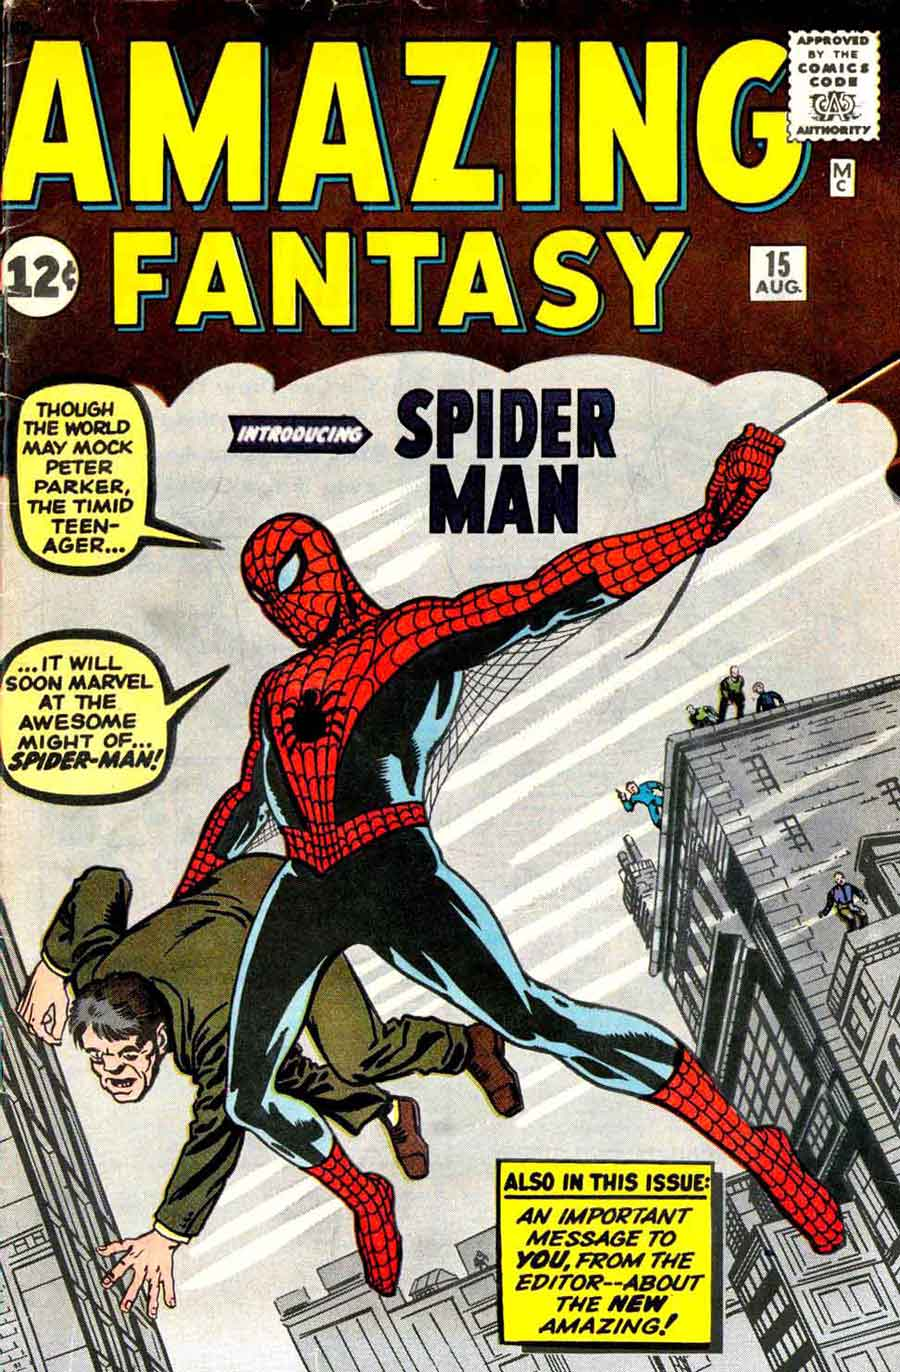 Amazing Fantasy v1 #15 marvel 1960s silver age comic book cover art by Jack Kirby and Steve Ditko